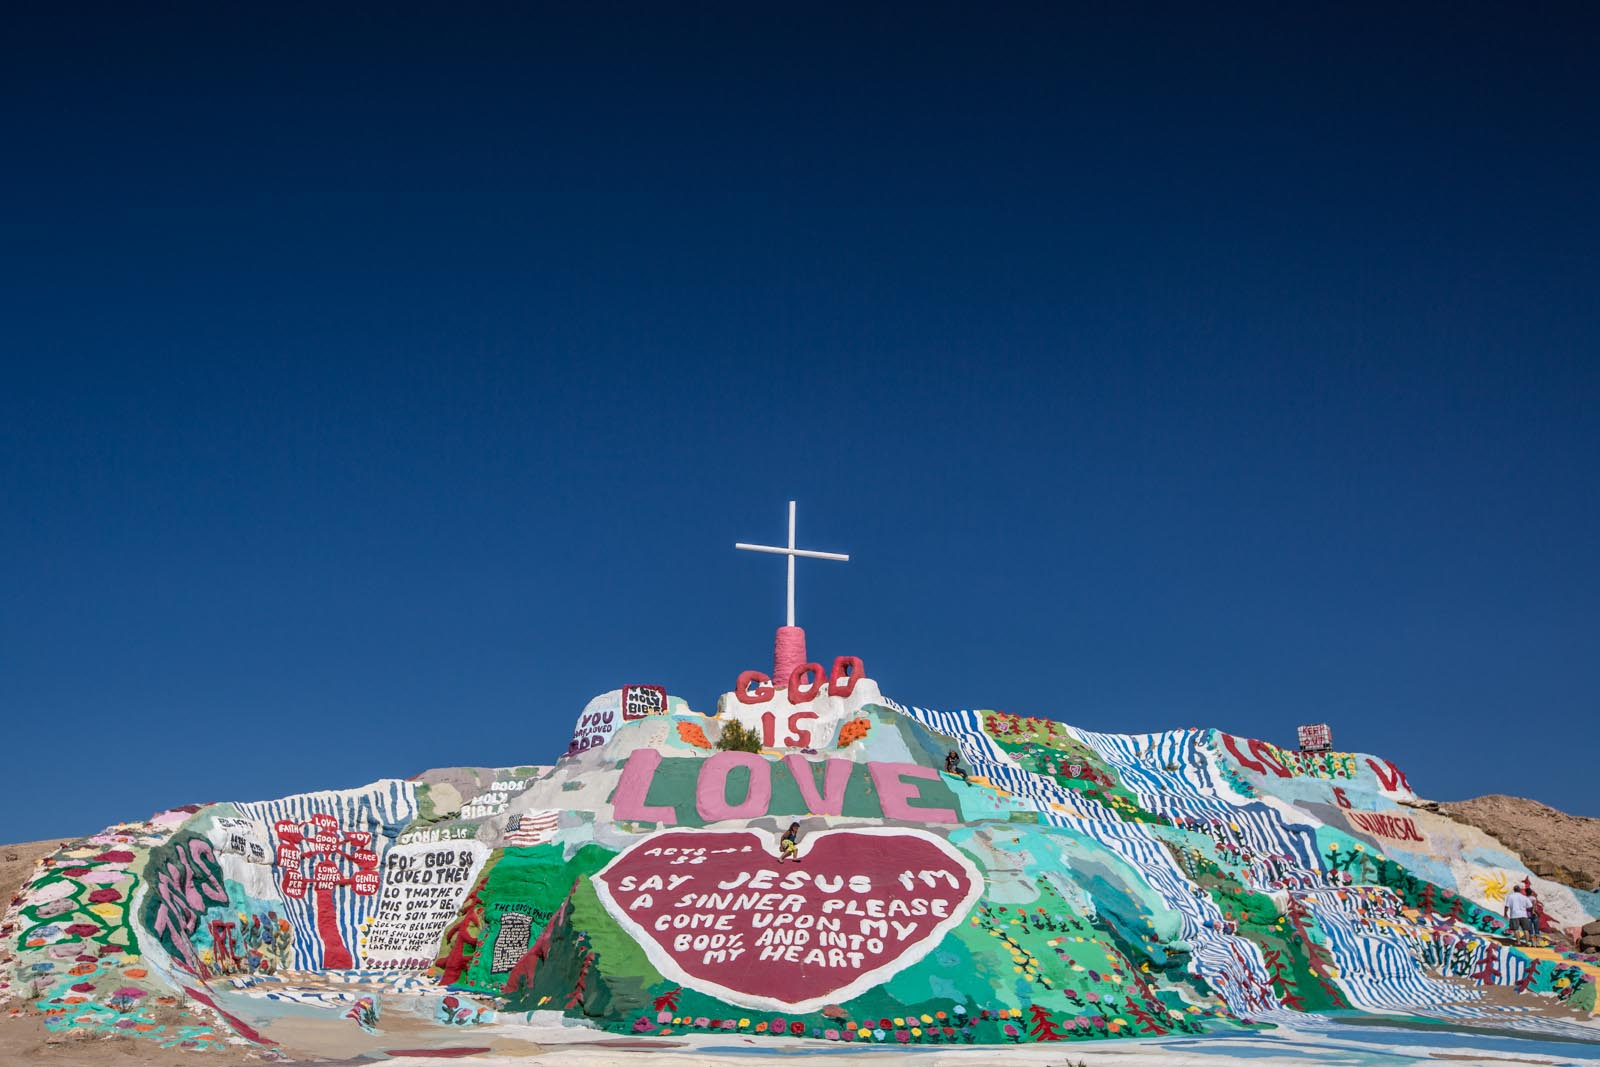 Salvation mountain, a spash of color in an otherwise very drab landscape.